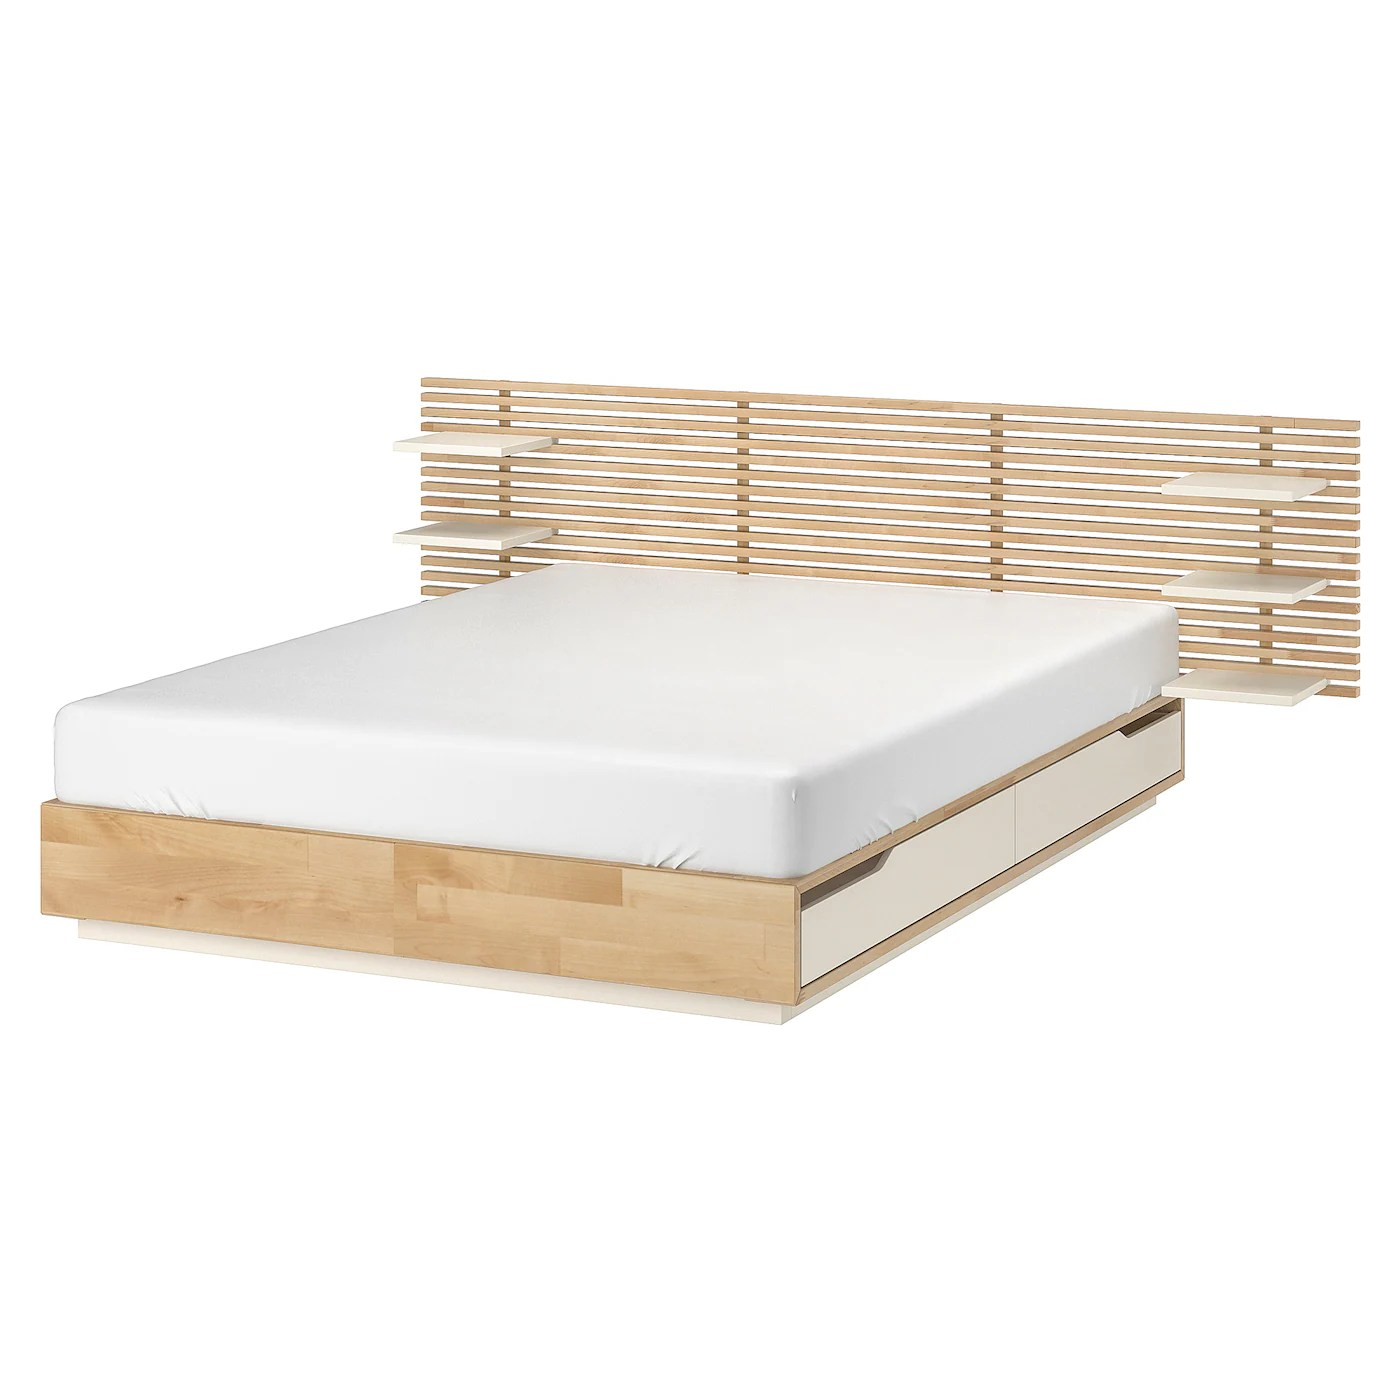 Ikea Mandal Frame Mandal Bed Frame With Headboard Birch White